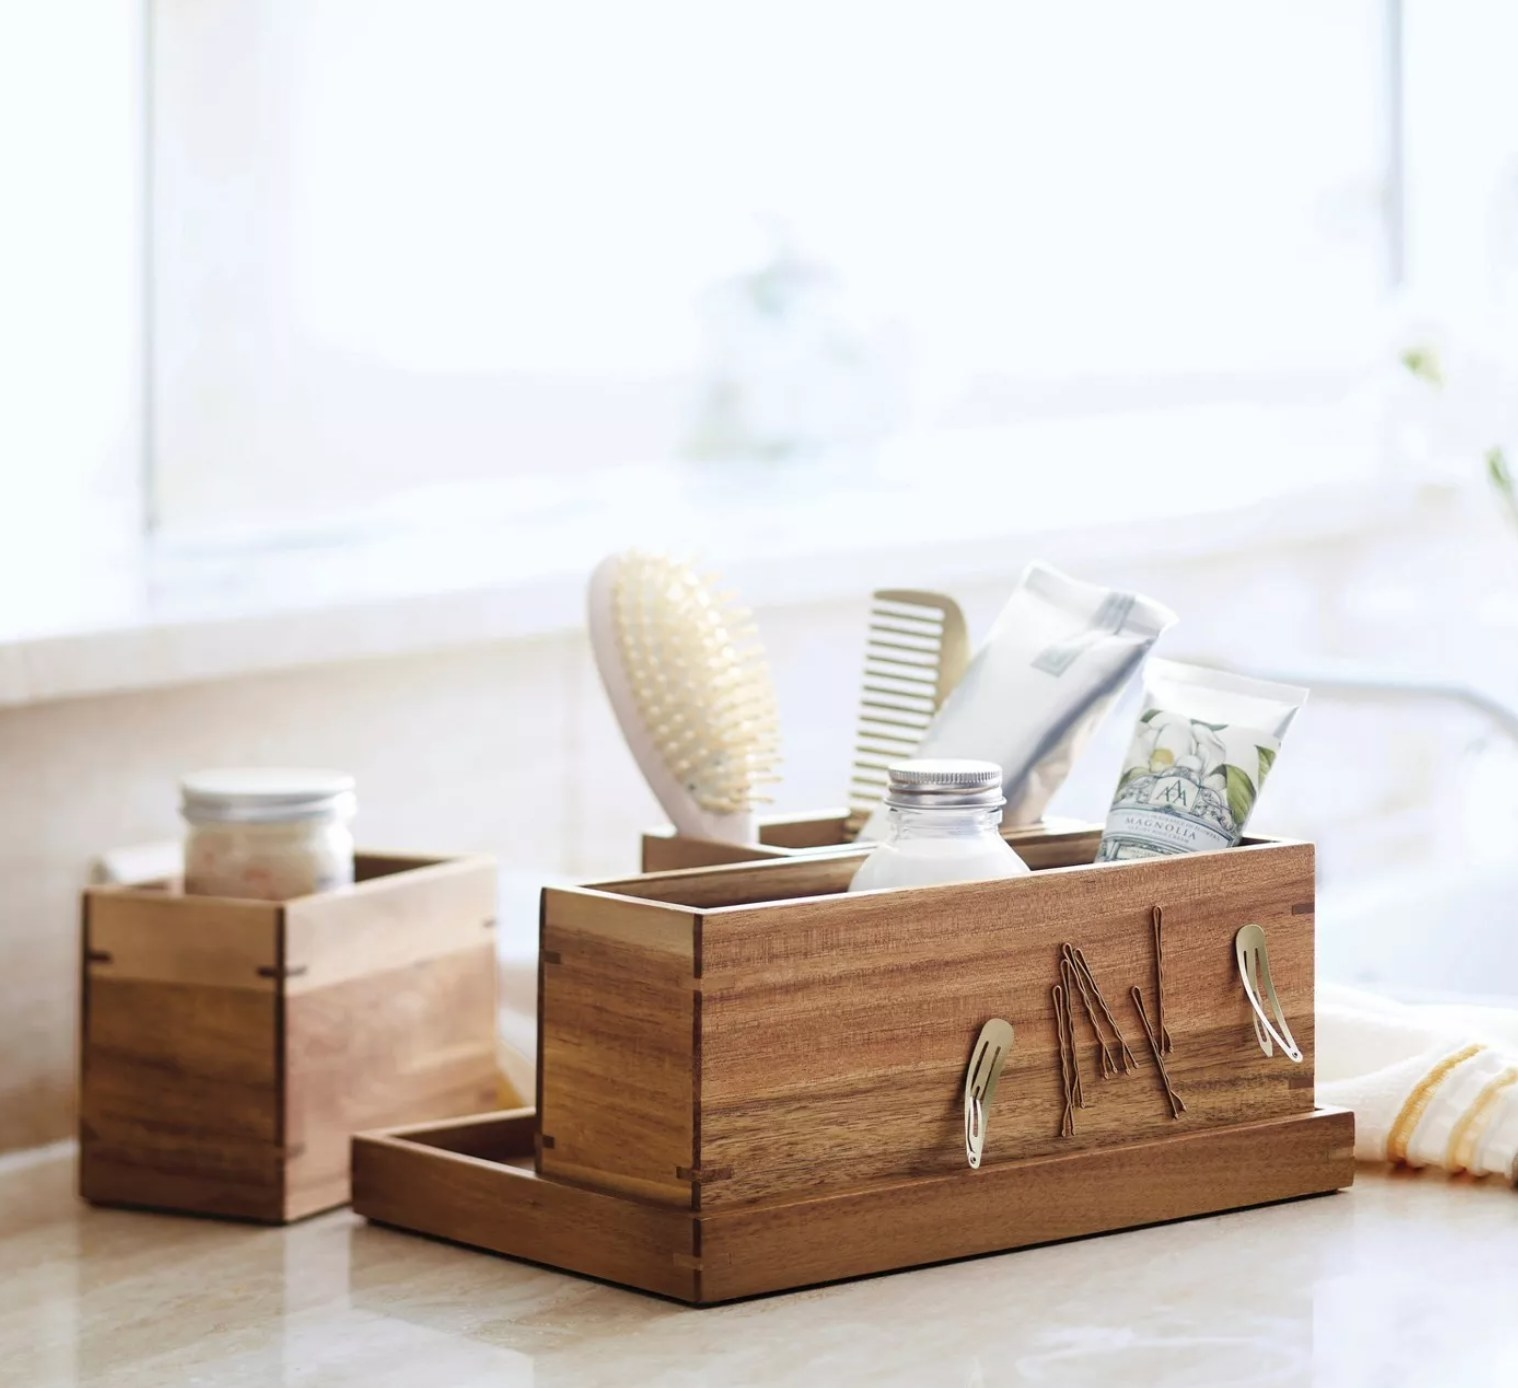 the wooden organizer with different bathroom essentials in it like brush, toothpaste, comb, and clips attached to the magnetic strip on the side